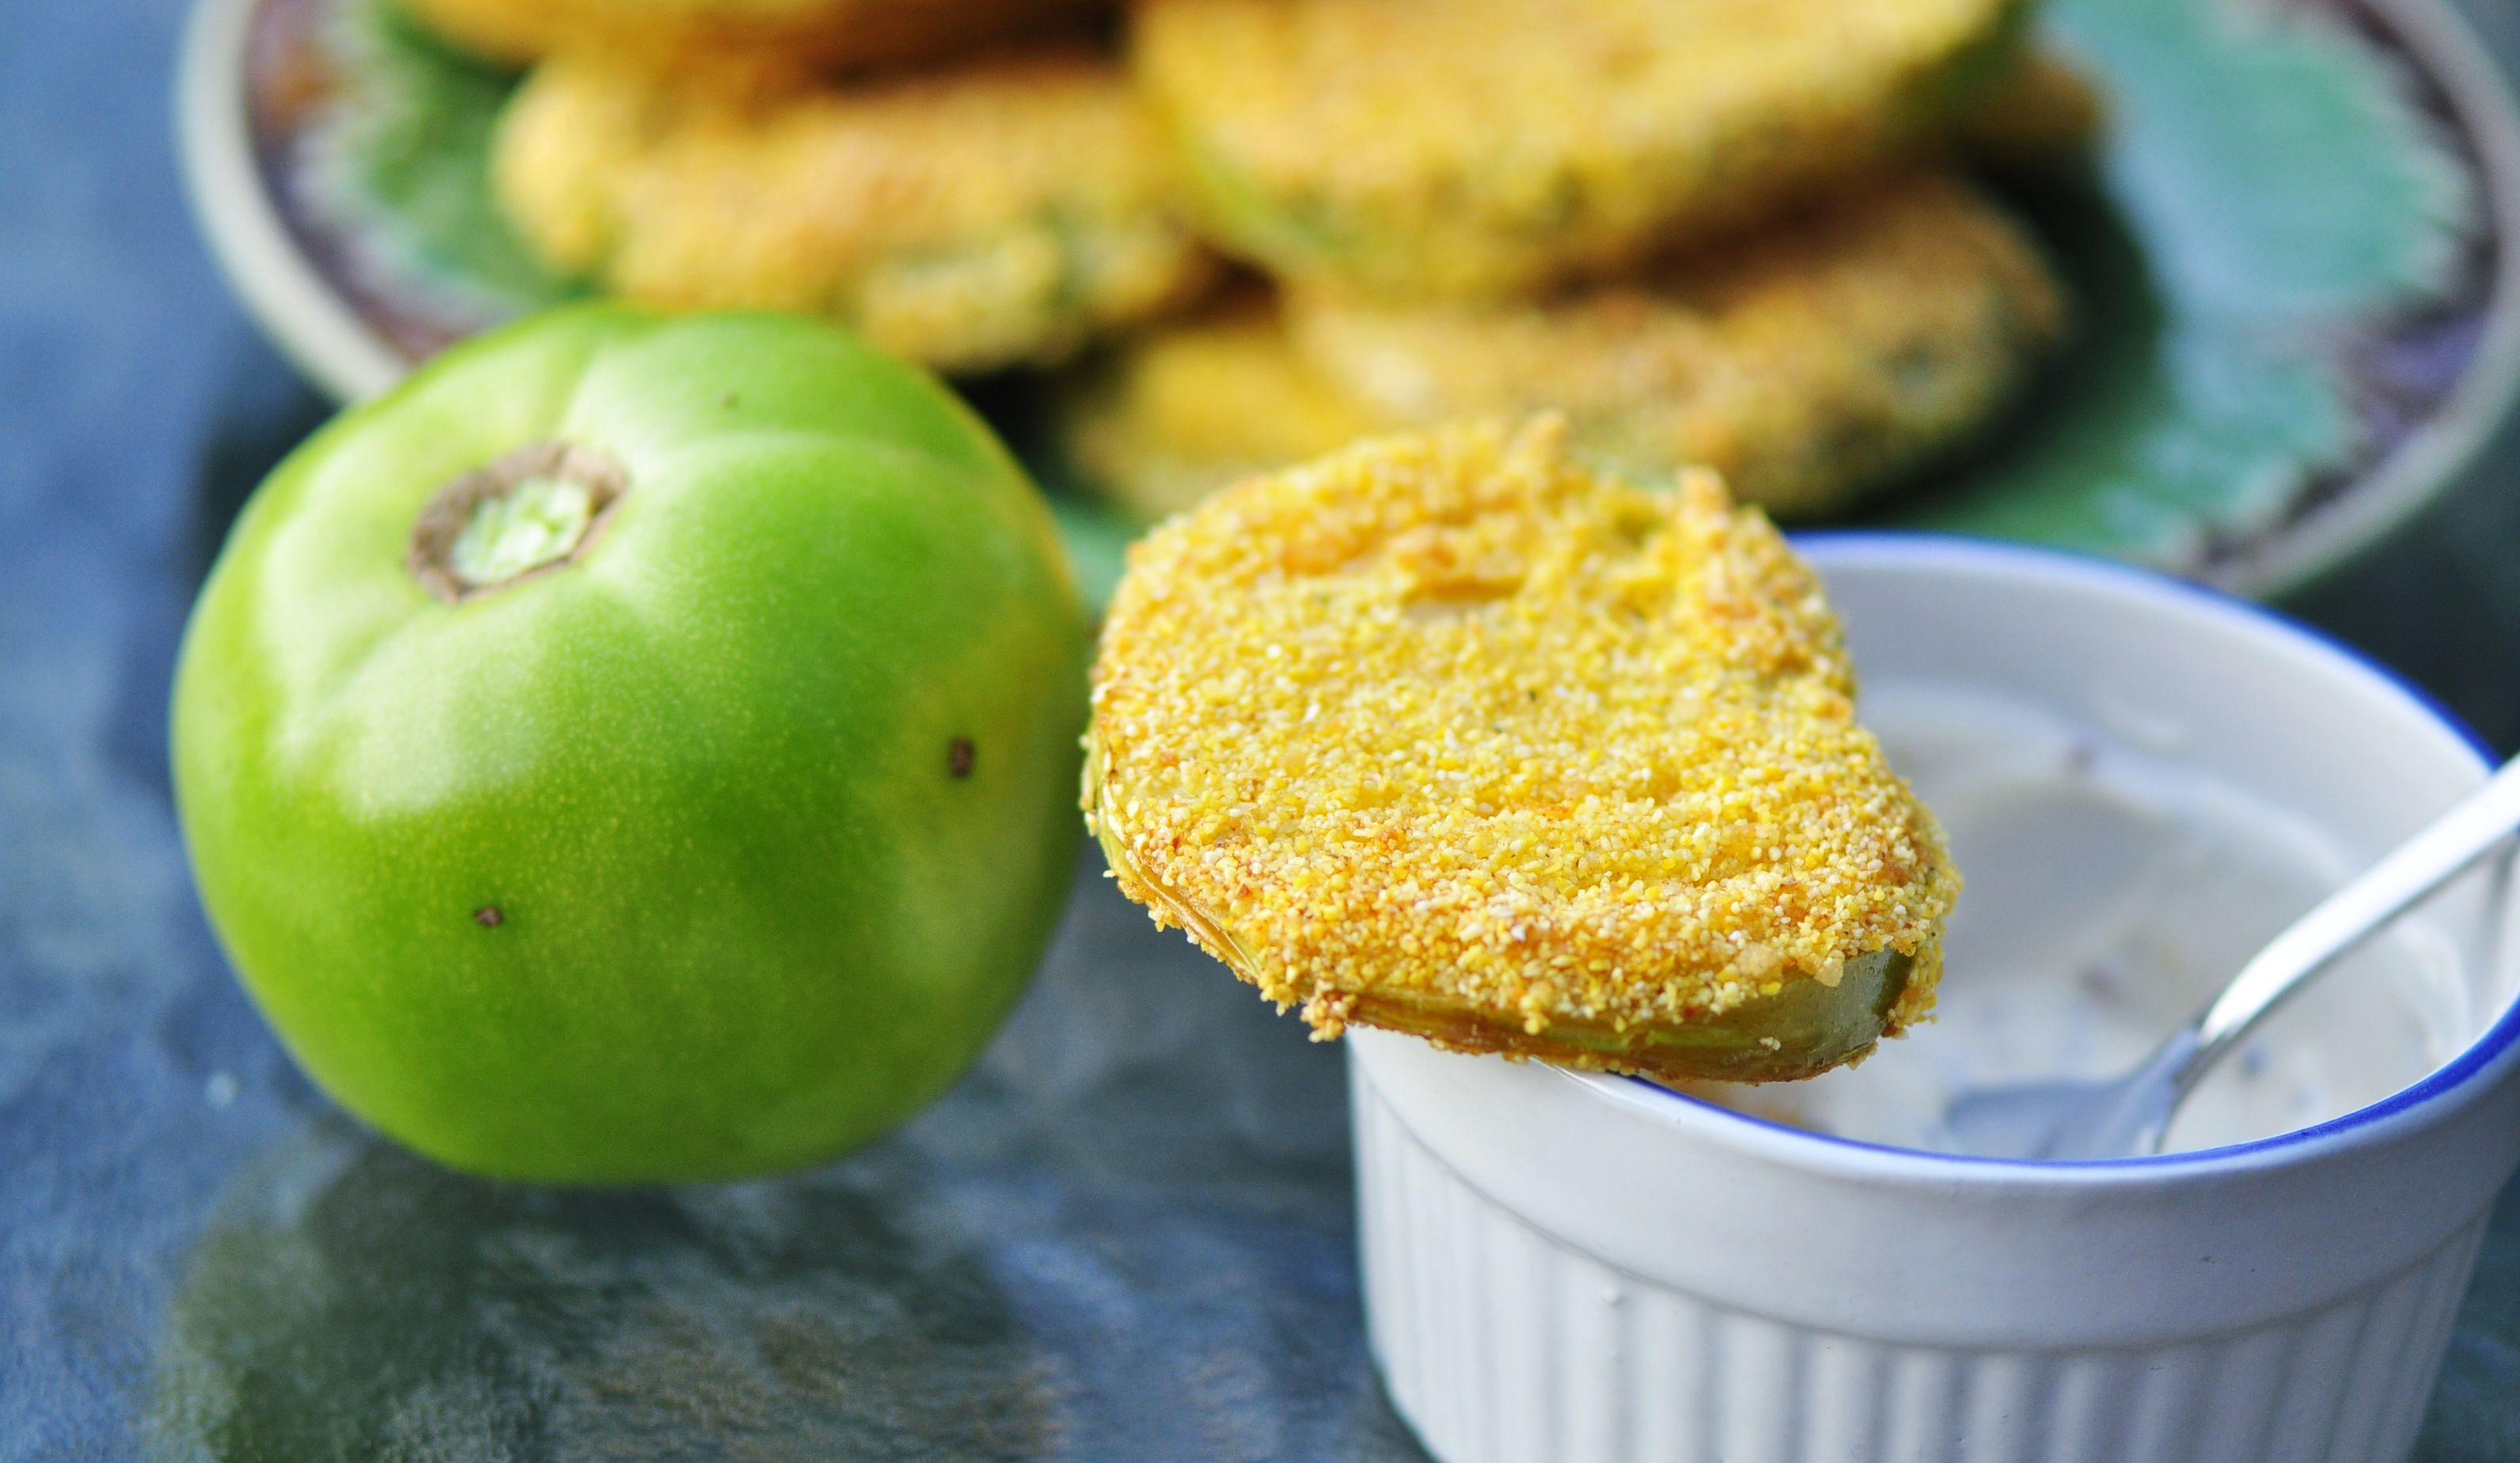 tomatoes and avocado lighter fried green tomatoes green fried tomatoes ...